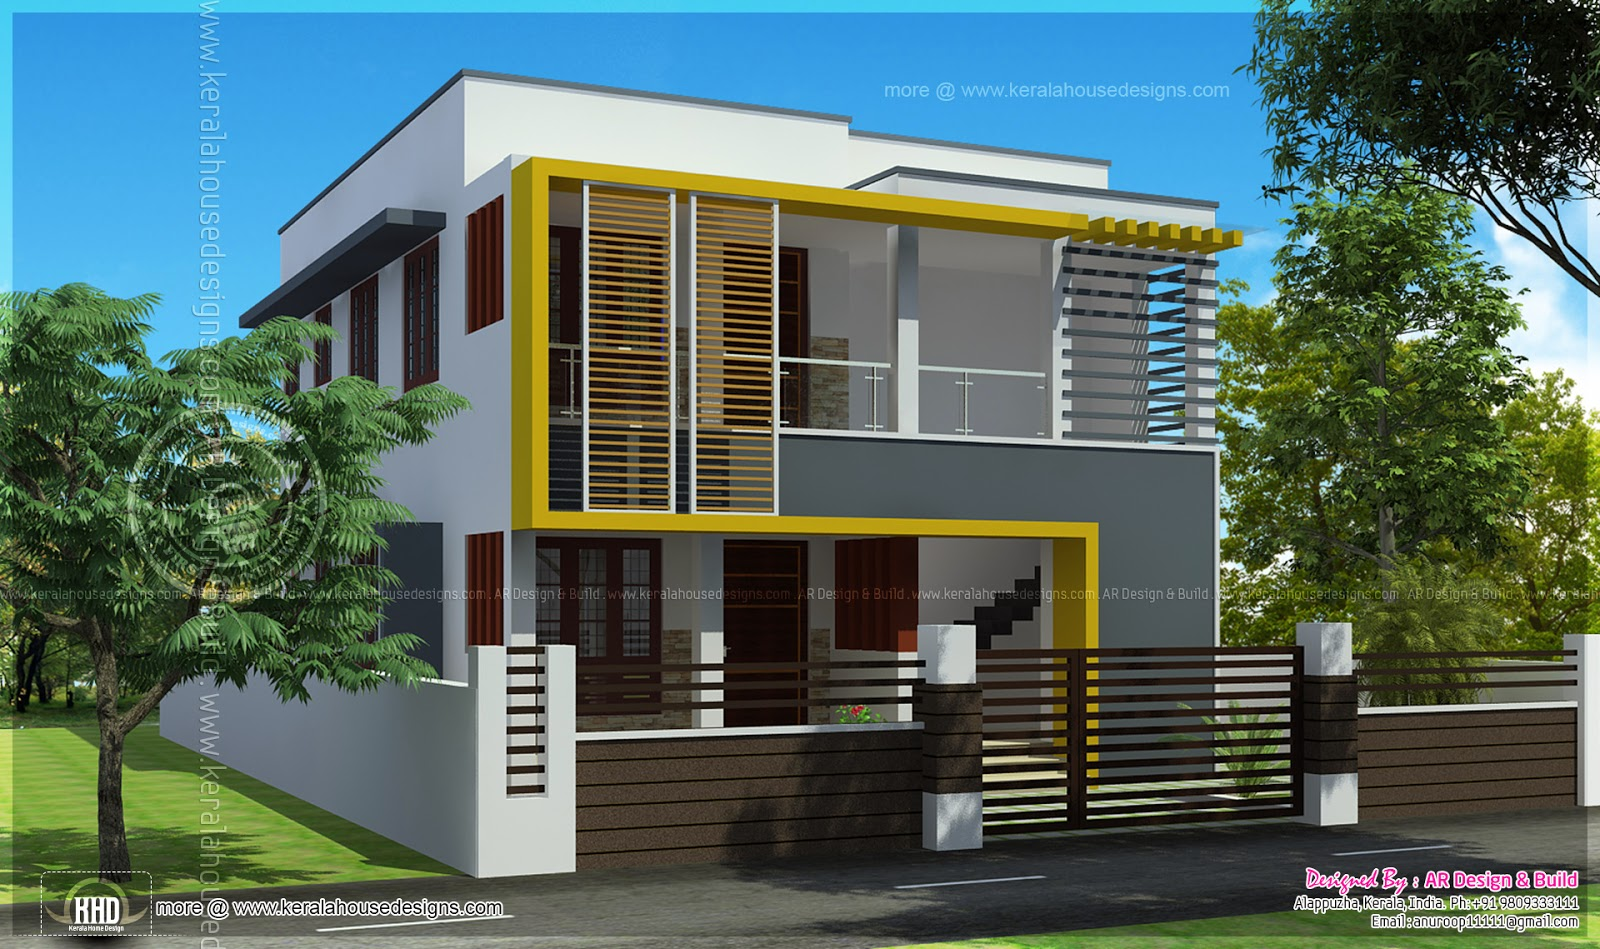 Front Elevation Duplex Houses Kerala : Duplex house elevation sq feet each kerala home